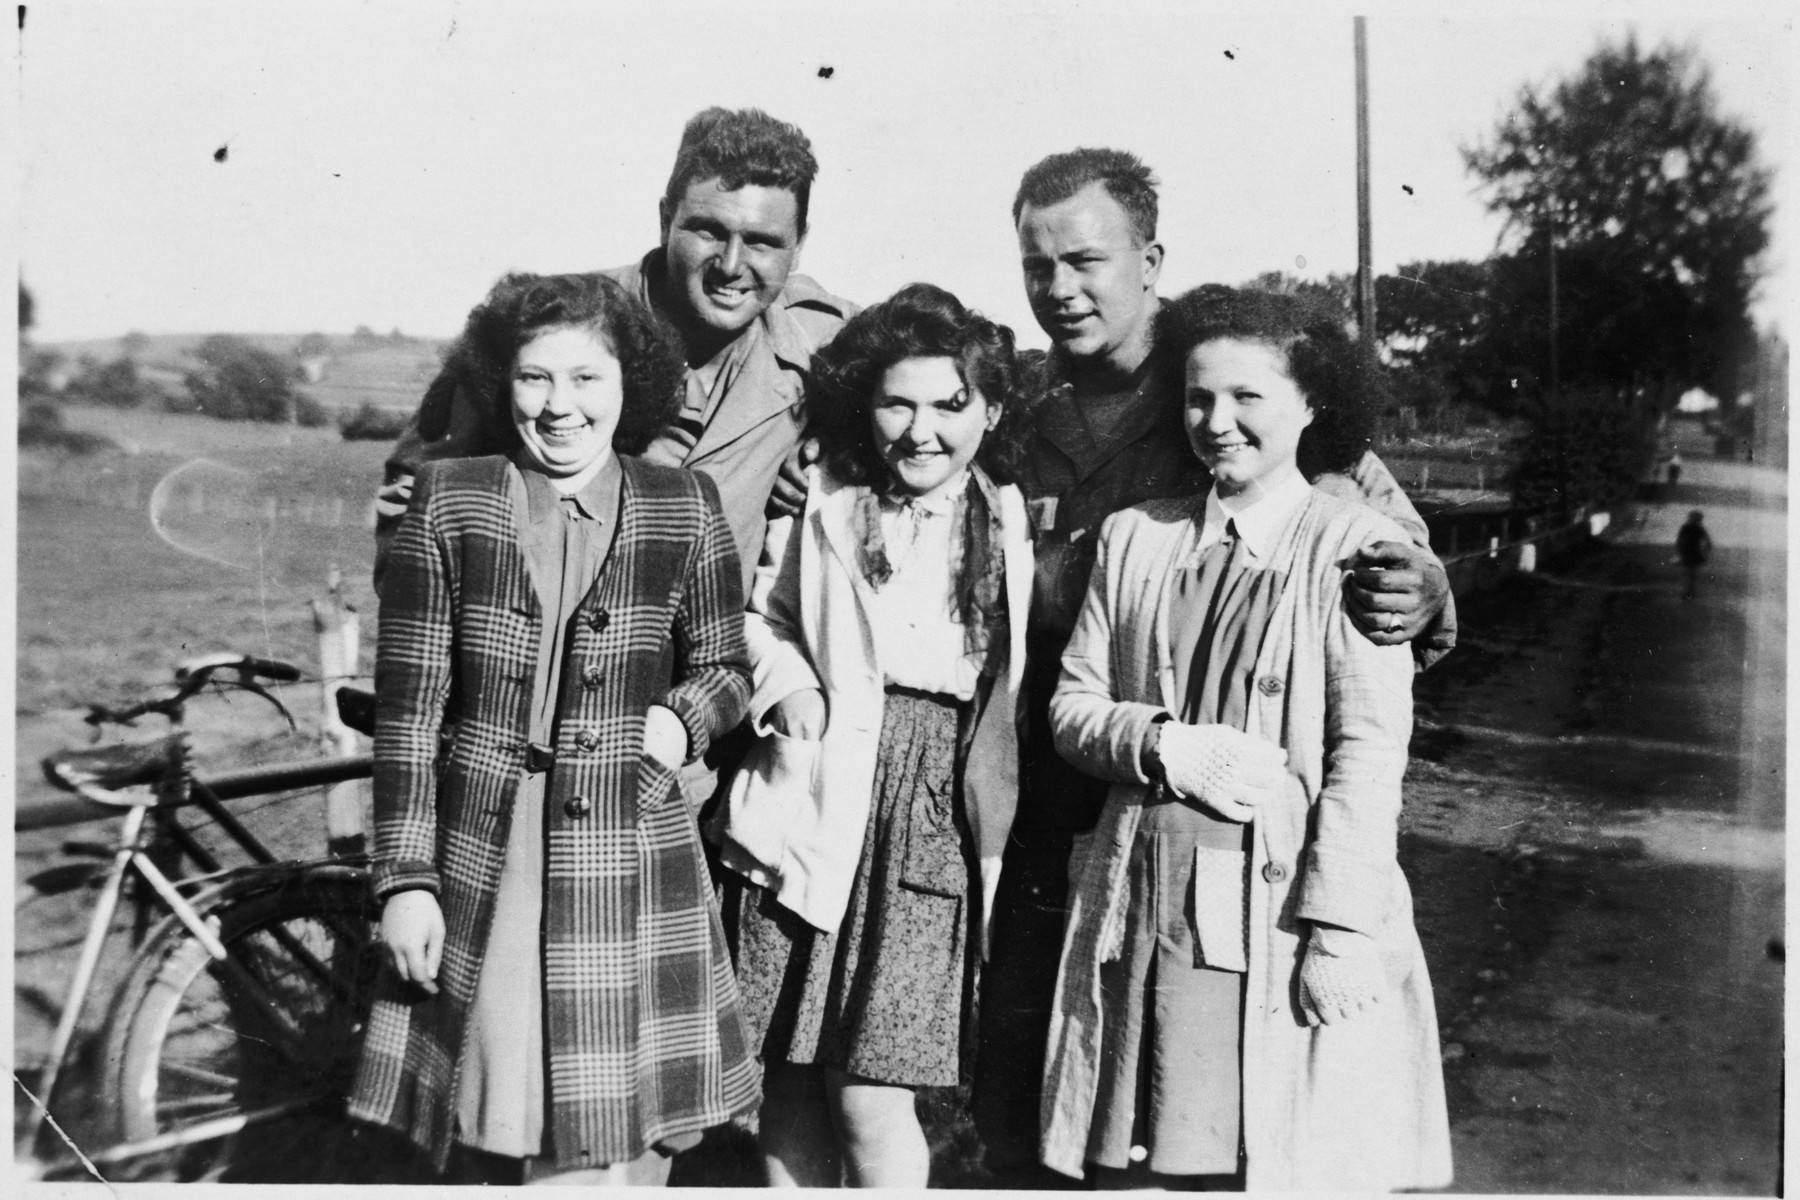 Hena Kohn and two other Jewish girls who had been in hiding pose with American soldiers after the liberation.